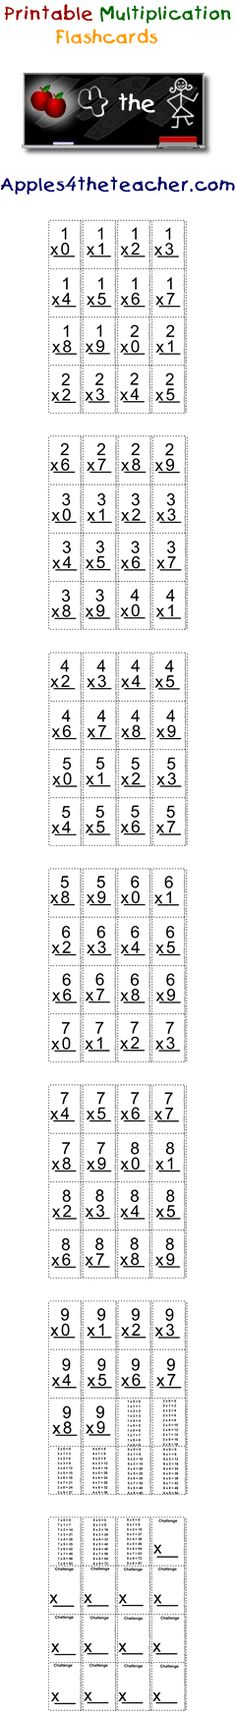 Learn your multiplication tables with these mini multiplication flash cards.  Multiplication flashcards reinforce multiplication tables from 1 to 9.    http://www.apples4theteacher.com/math/multiplication/flashcards/